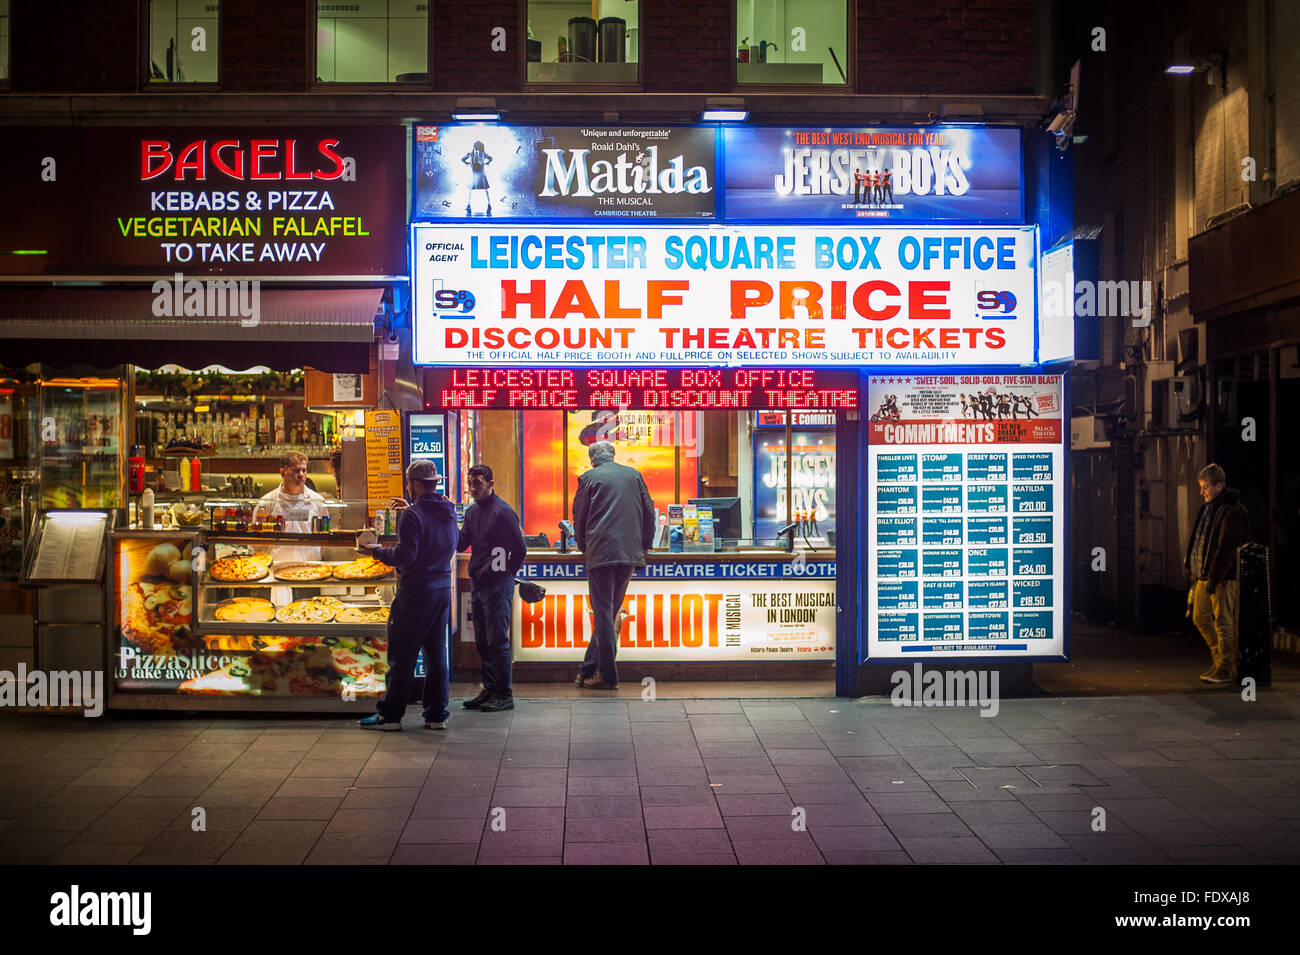 Leicester Square box office and bagel shop at night, London - Stock Image